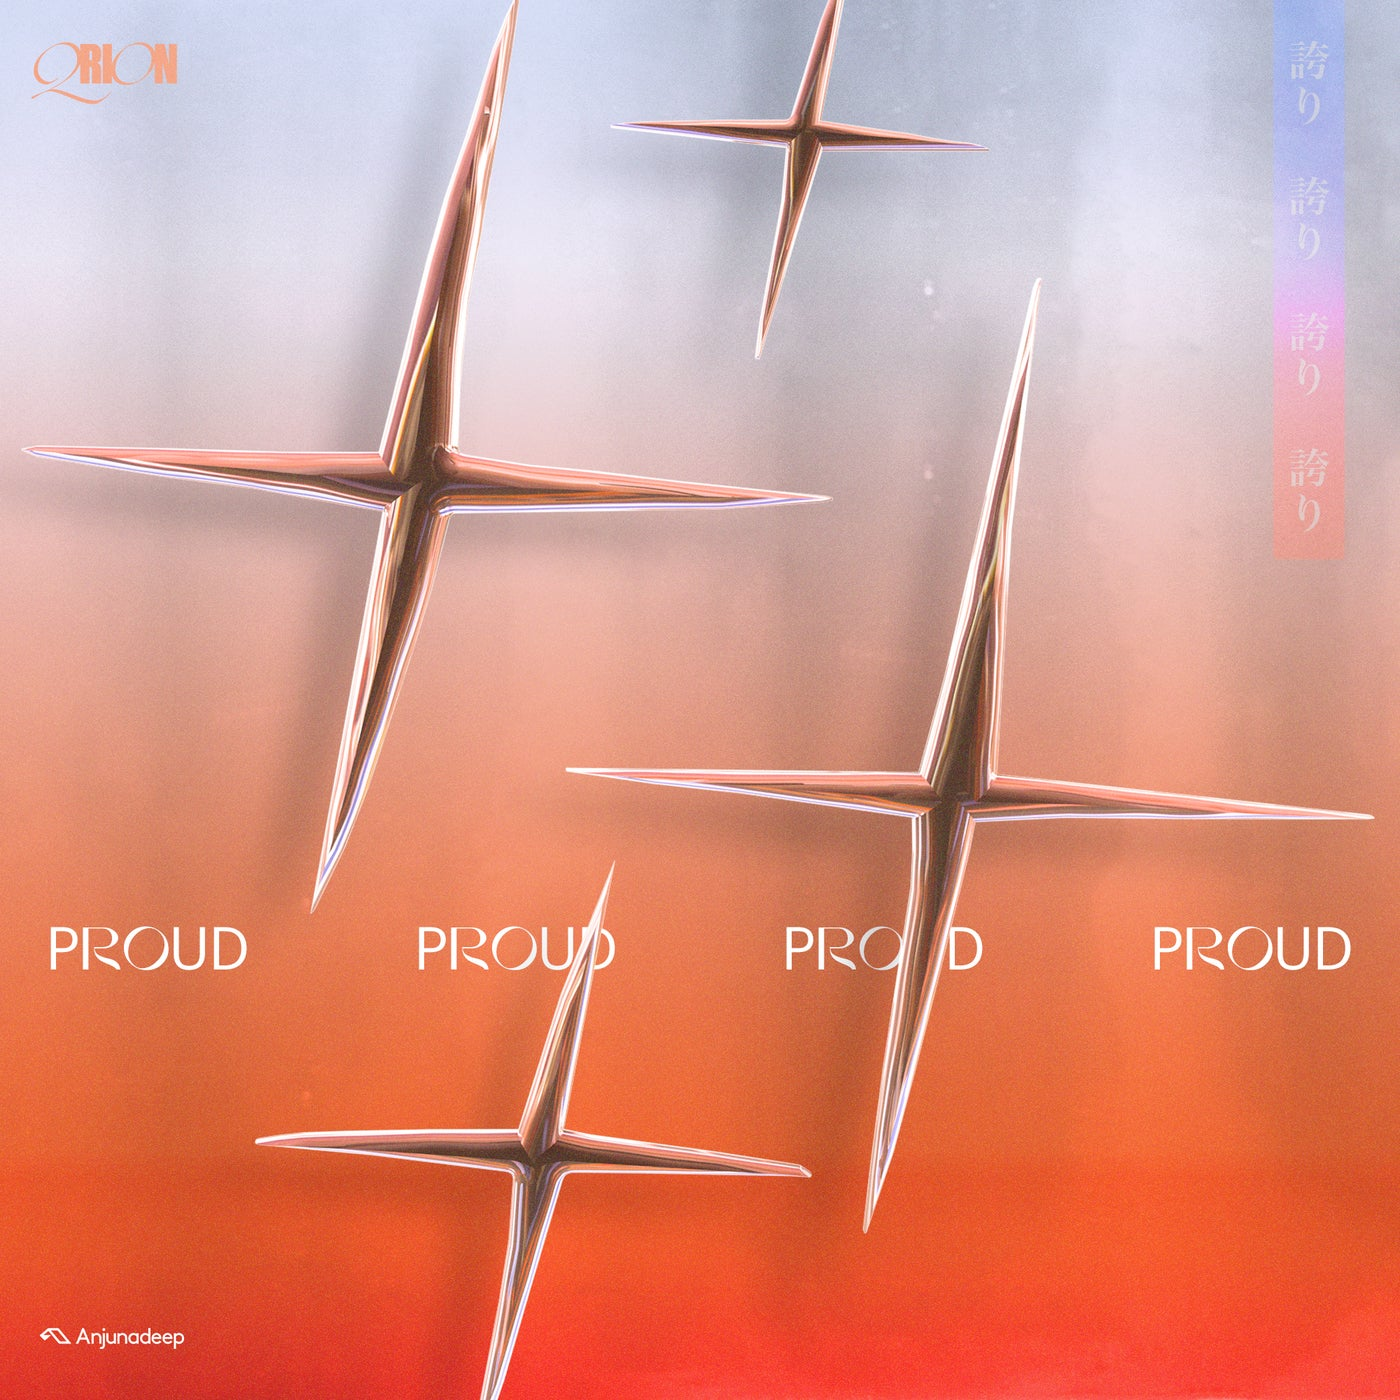 Proud (Extended Mix)